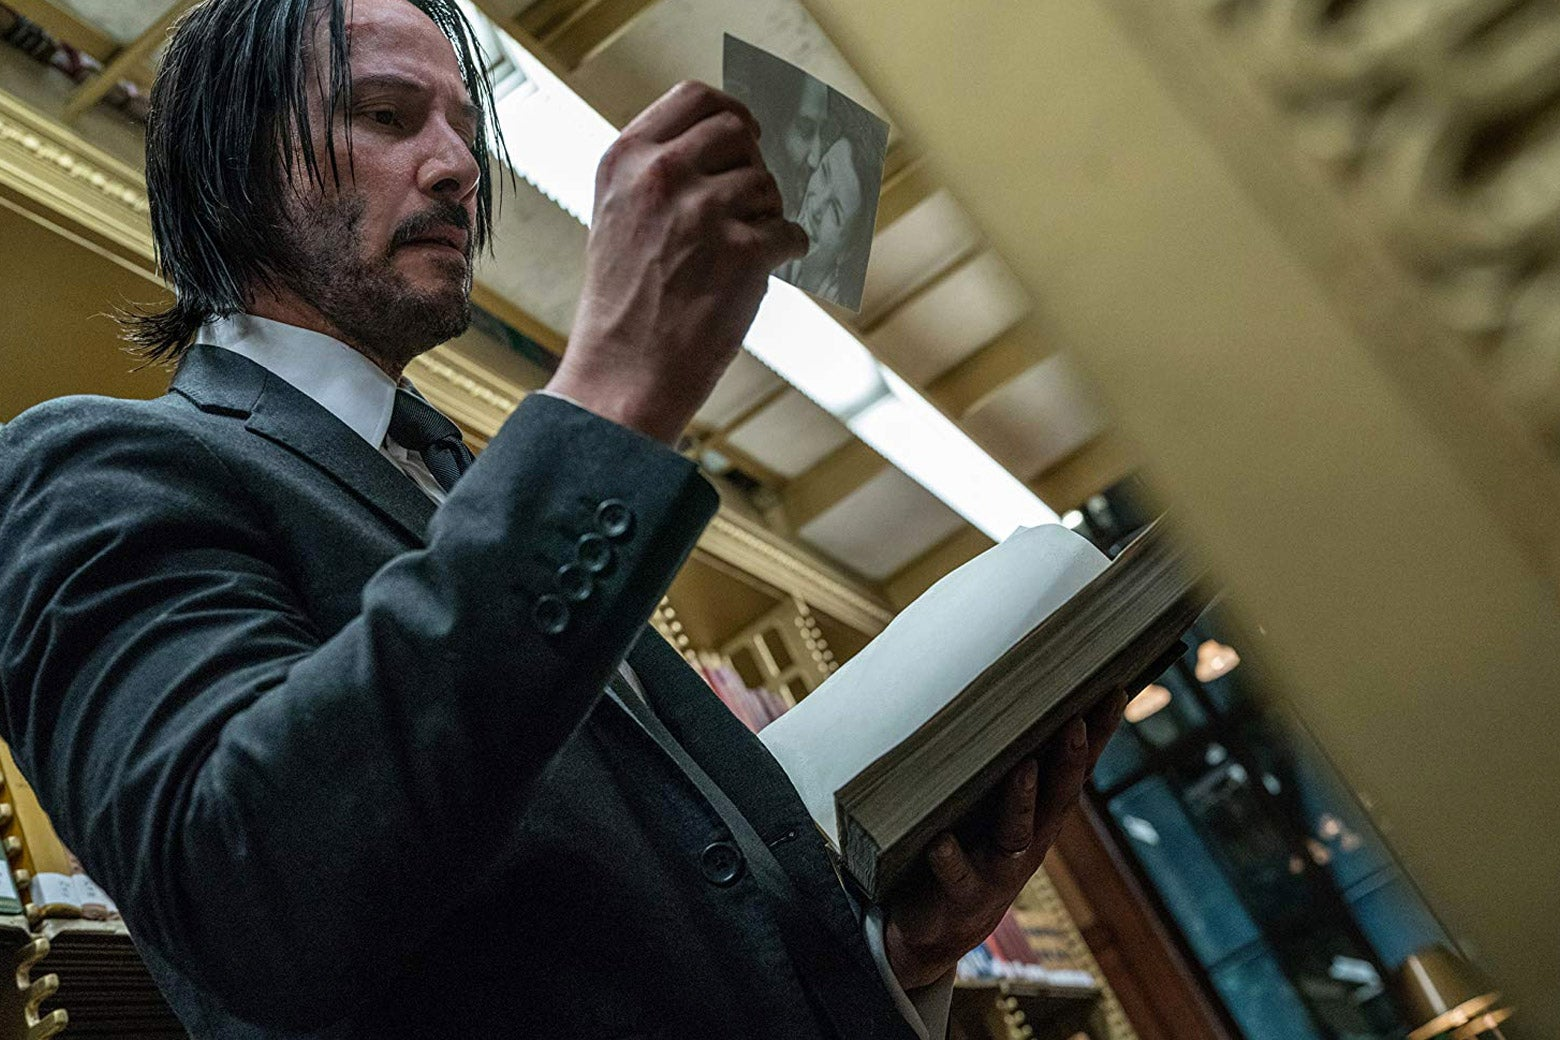 John Wick looks at a photo found inside a book, as he stands in the stacks of a library.